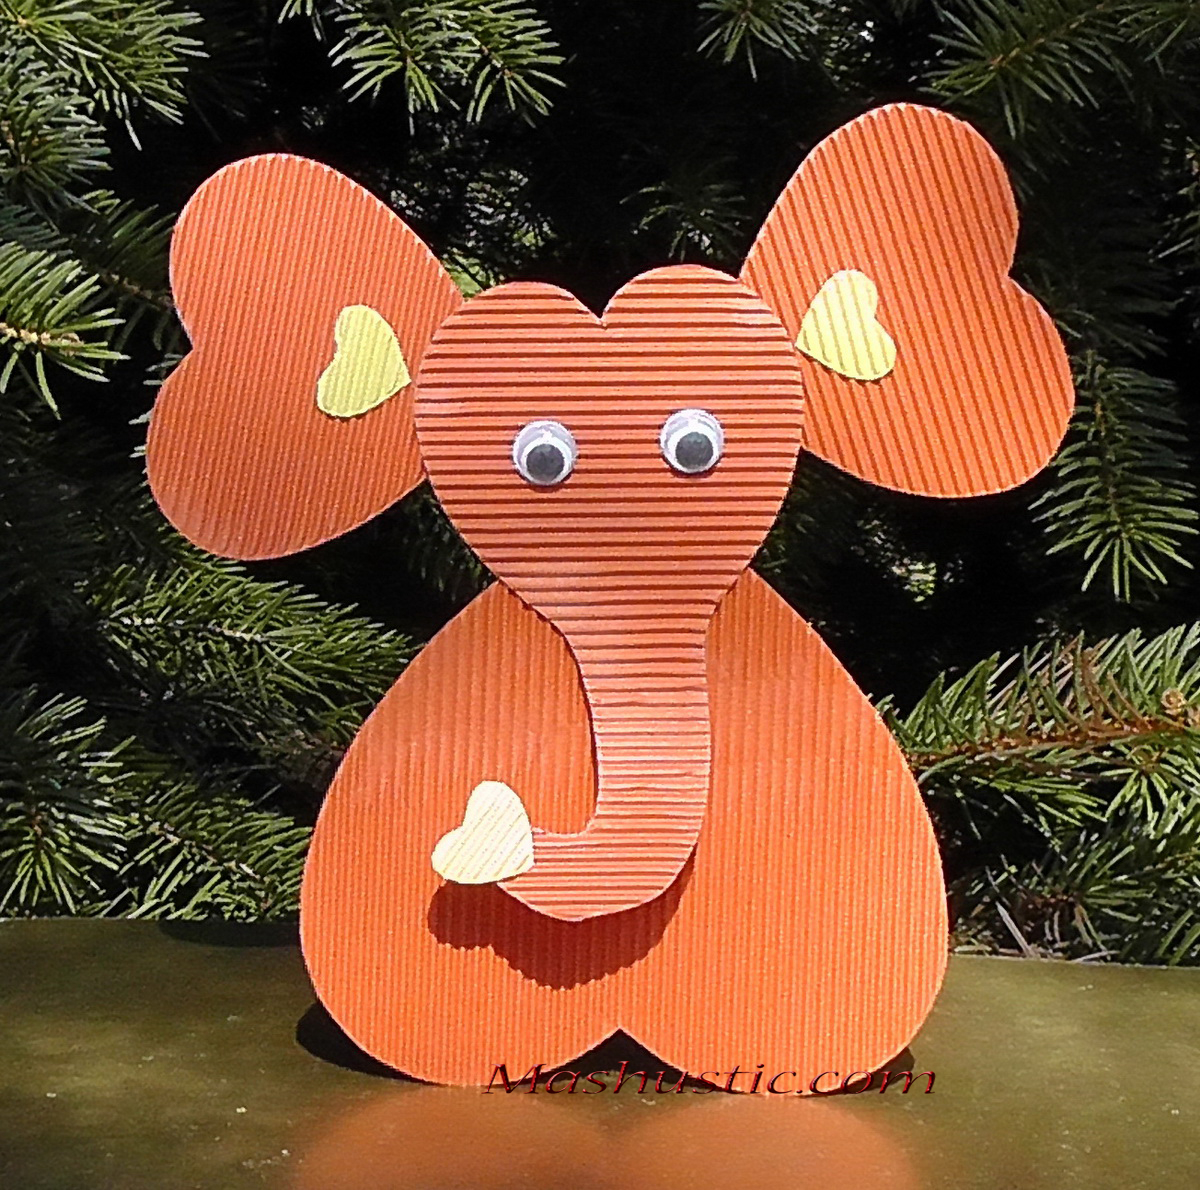 How to Make an Elephant Paper Craft Fun Crafts for Kids An Elephant Out Of Paper Hearts Mashustic